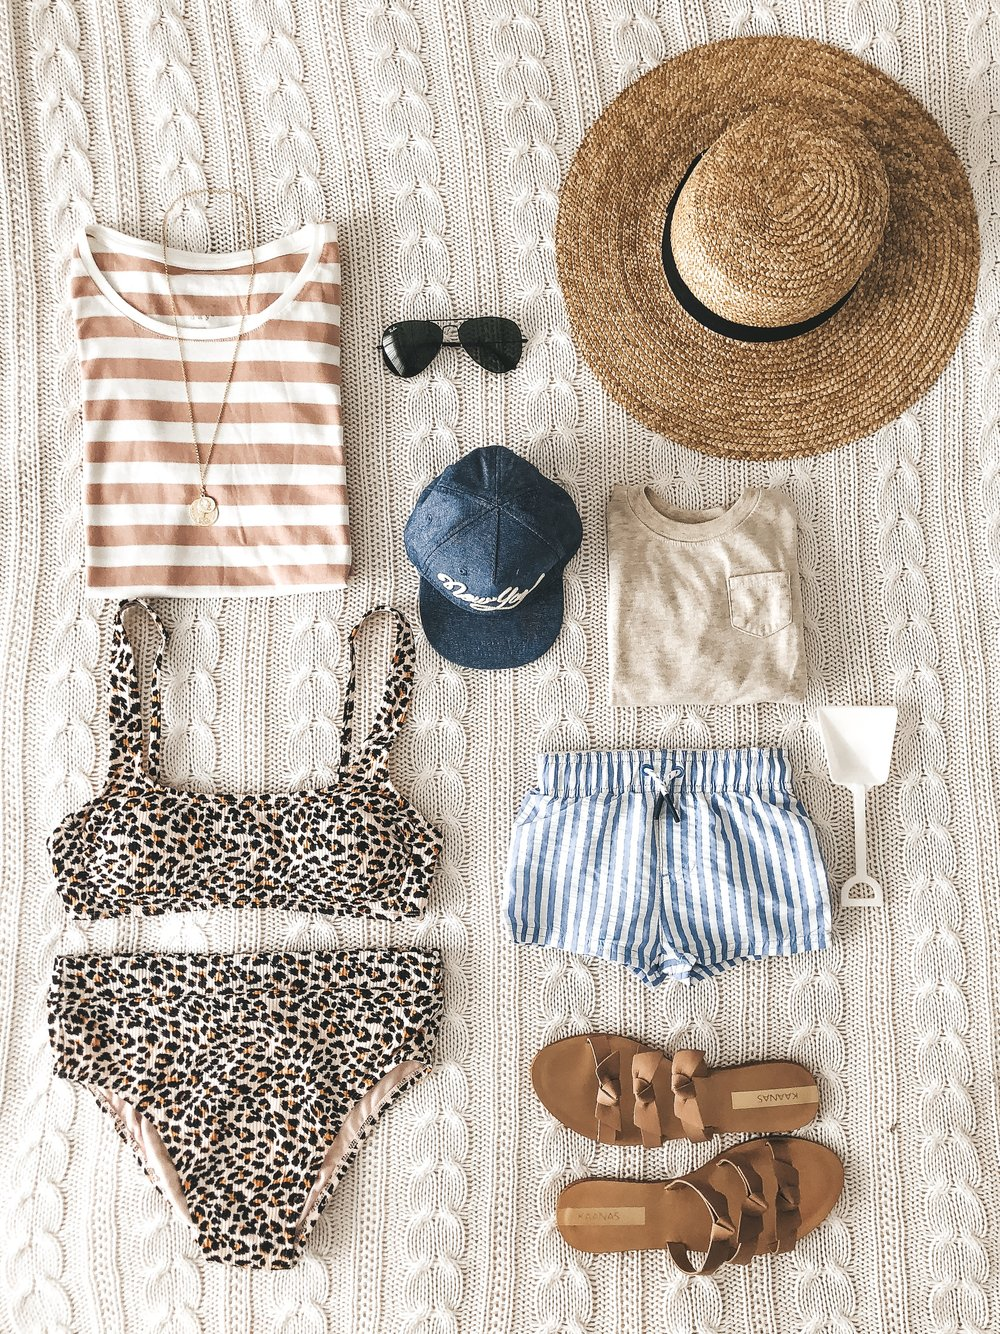 Mommy and me outfits for spring.